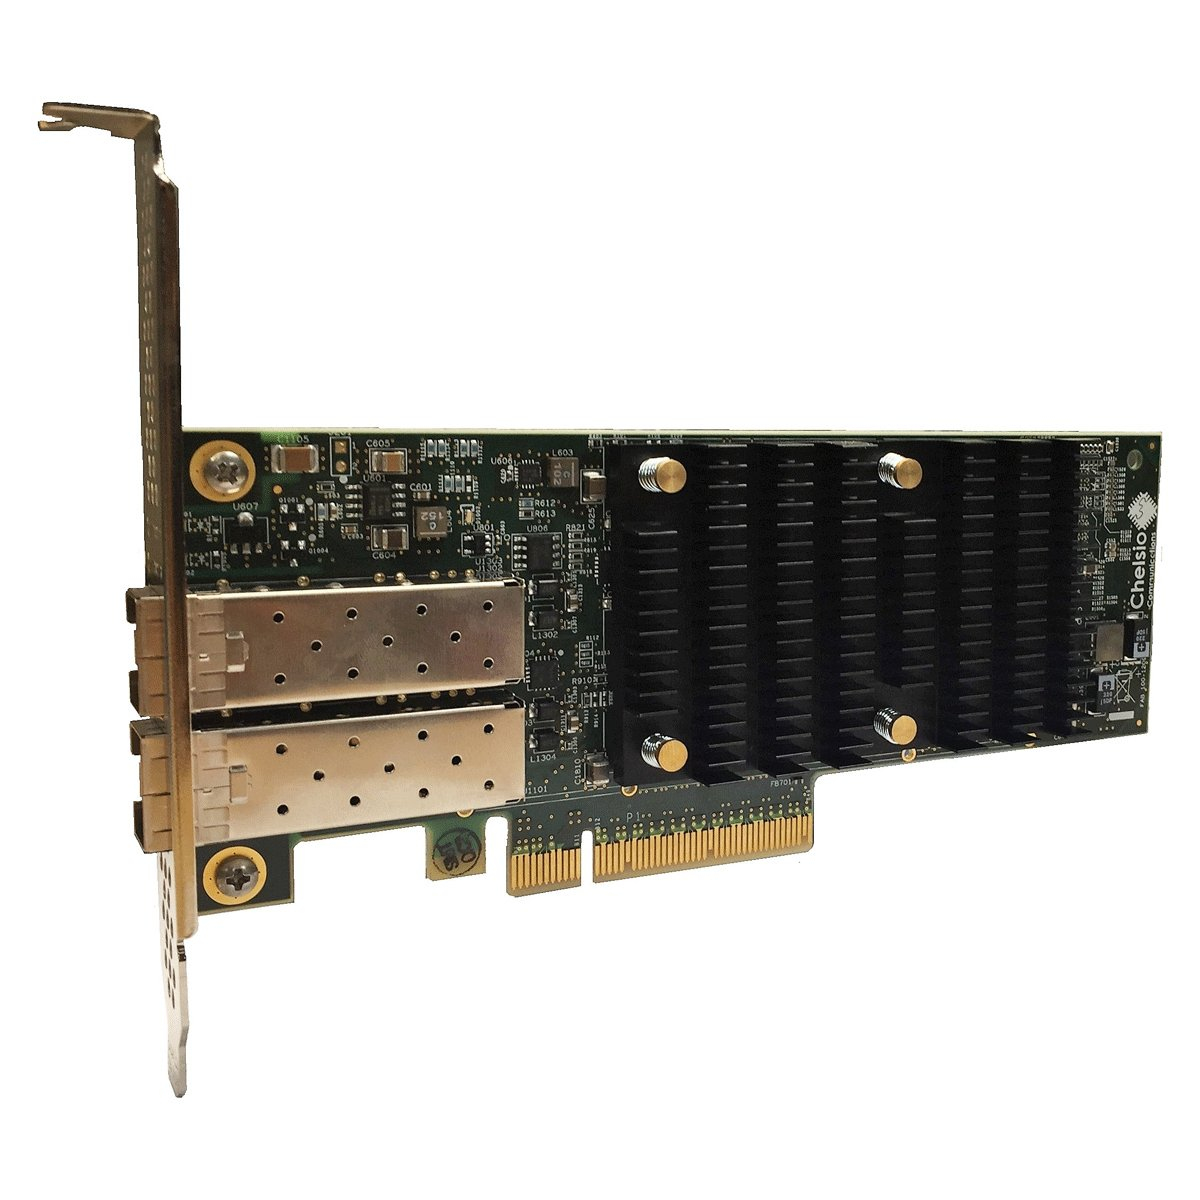 CHELSIO COMMUNICATIONS T6225-SO-CR 2-port Low Profile 10/25GbE Server Offload Adapter with PCI-E x8 Gen 3, SFP28 connector by Chelsio Communications